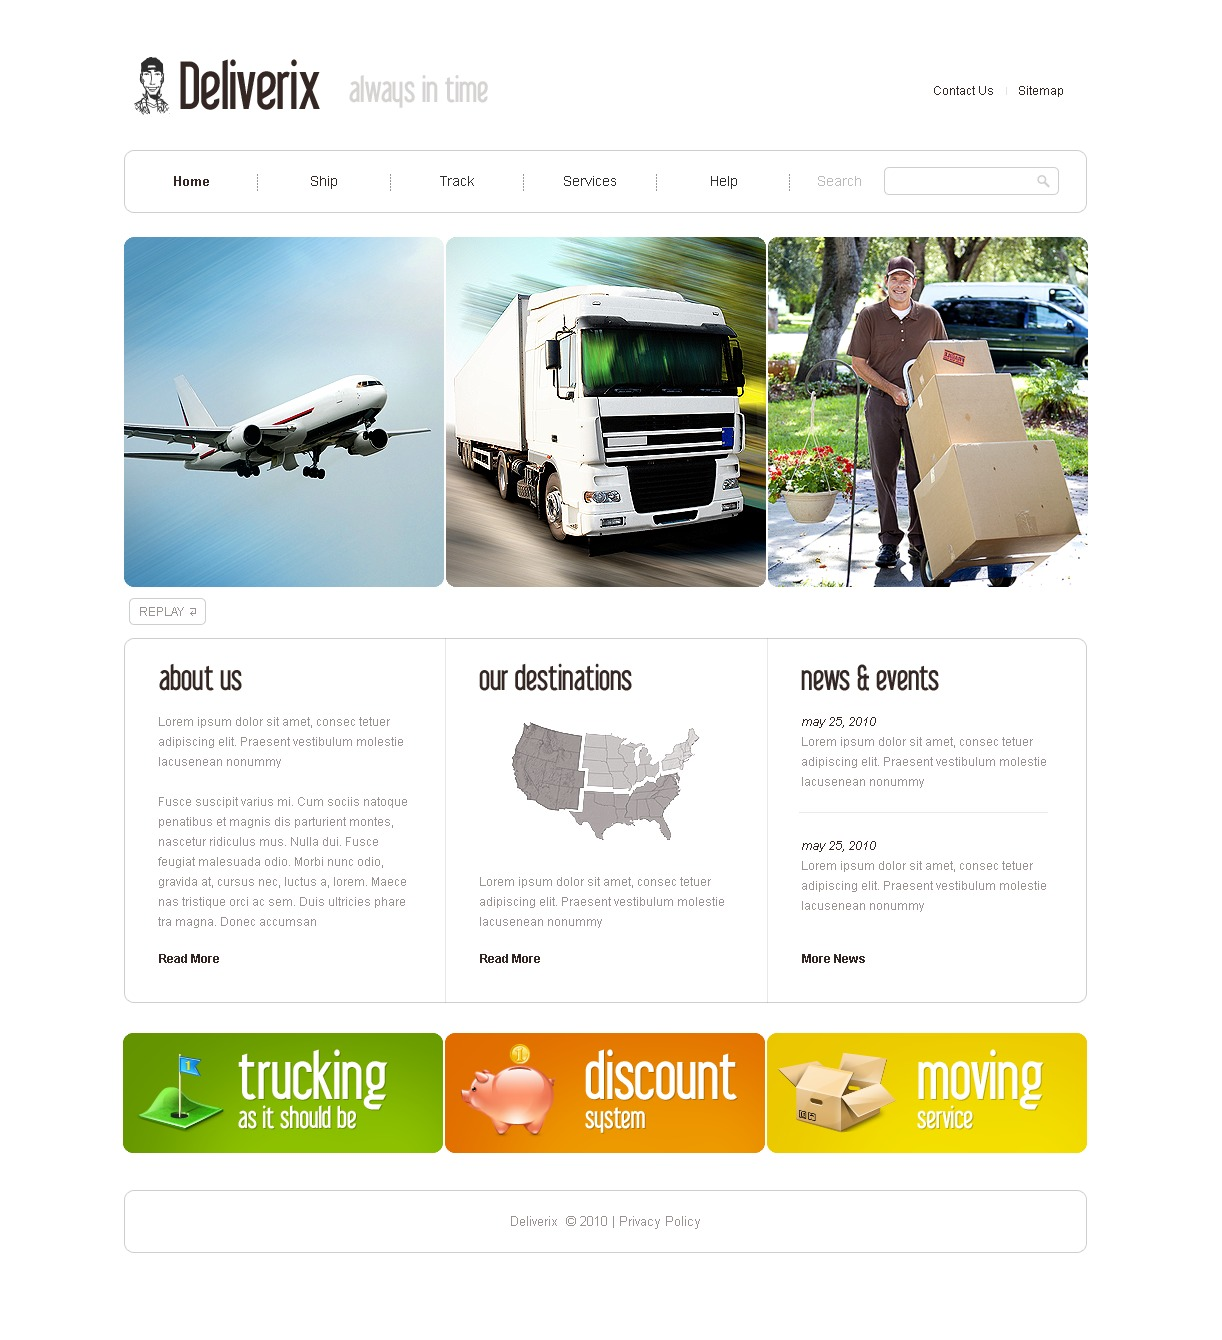 The Deliverix Transportation Company PSD Design 54168, one of the best PSD templates of its kind (transportation, most popular, flash 8, wide), also known as deliverix transportation company PSD template, transport PSD template, fast PSD template, reliability PSD template, safety PSD template, express PSD template, exportation PSD template, trucking PSD template, delivery PSD template, work PSD template, team PSD template, profile PSD template, support PSD template, customer PSD template, clients solutions PSD template, cars PSD template, cargo PSD template, services PSD template, shipment PSD template, rates PSD template, prices PSD template, offer PSD template, standards PSD template, vehicle PSD template, destination PSD template, trucking PSD template, sea and related with deliverix transportation company, transport, fast, reliability, safety, express, exportation, trucking, delivery, work, team, profile, support, customer, clients solutions, cars, cargo, services, shipment, rates, prices, offer, standards, vehicle, destination, trucking, sea, etc.